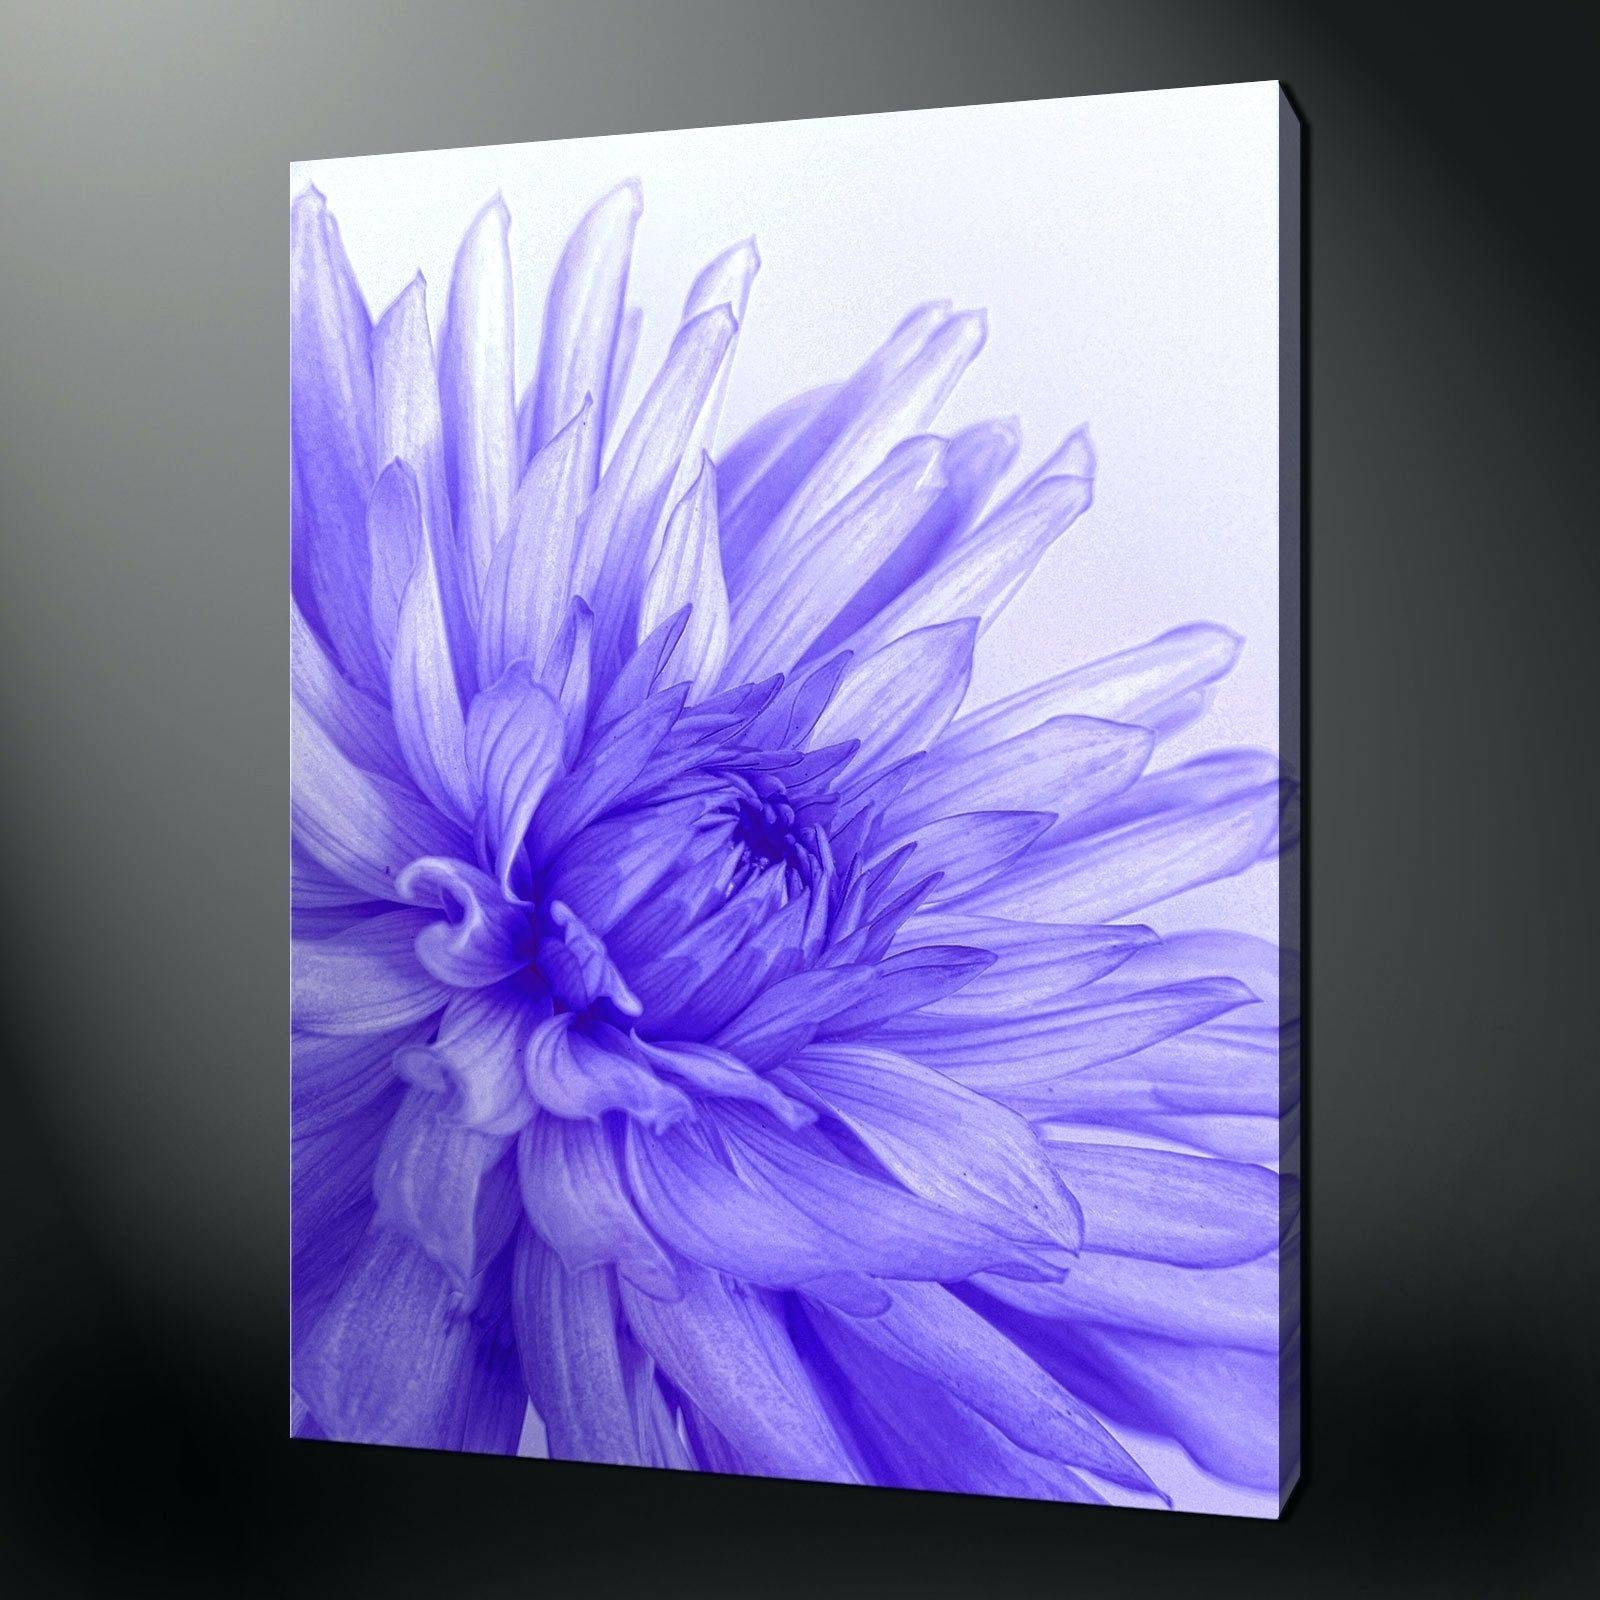 Wall Arts ~ Teal Flower Canvas Wall Art Blue Flower Metal Wall Art In Current Blue Flower Metal Wall Art (View 18 of 20)